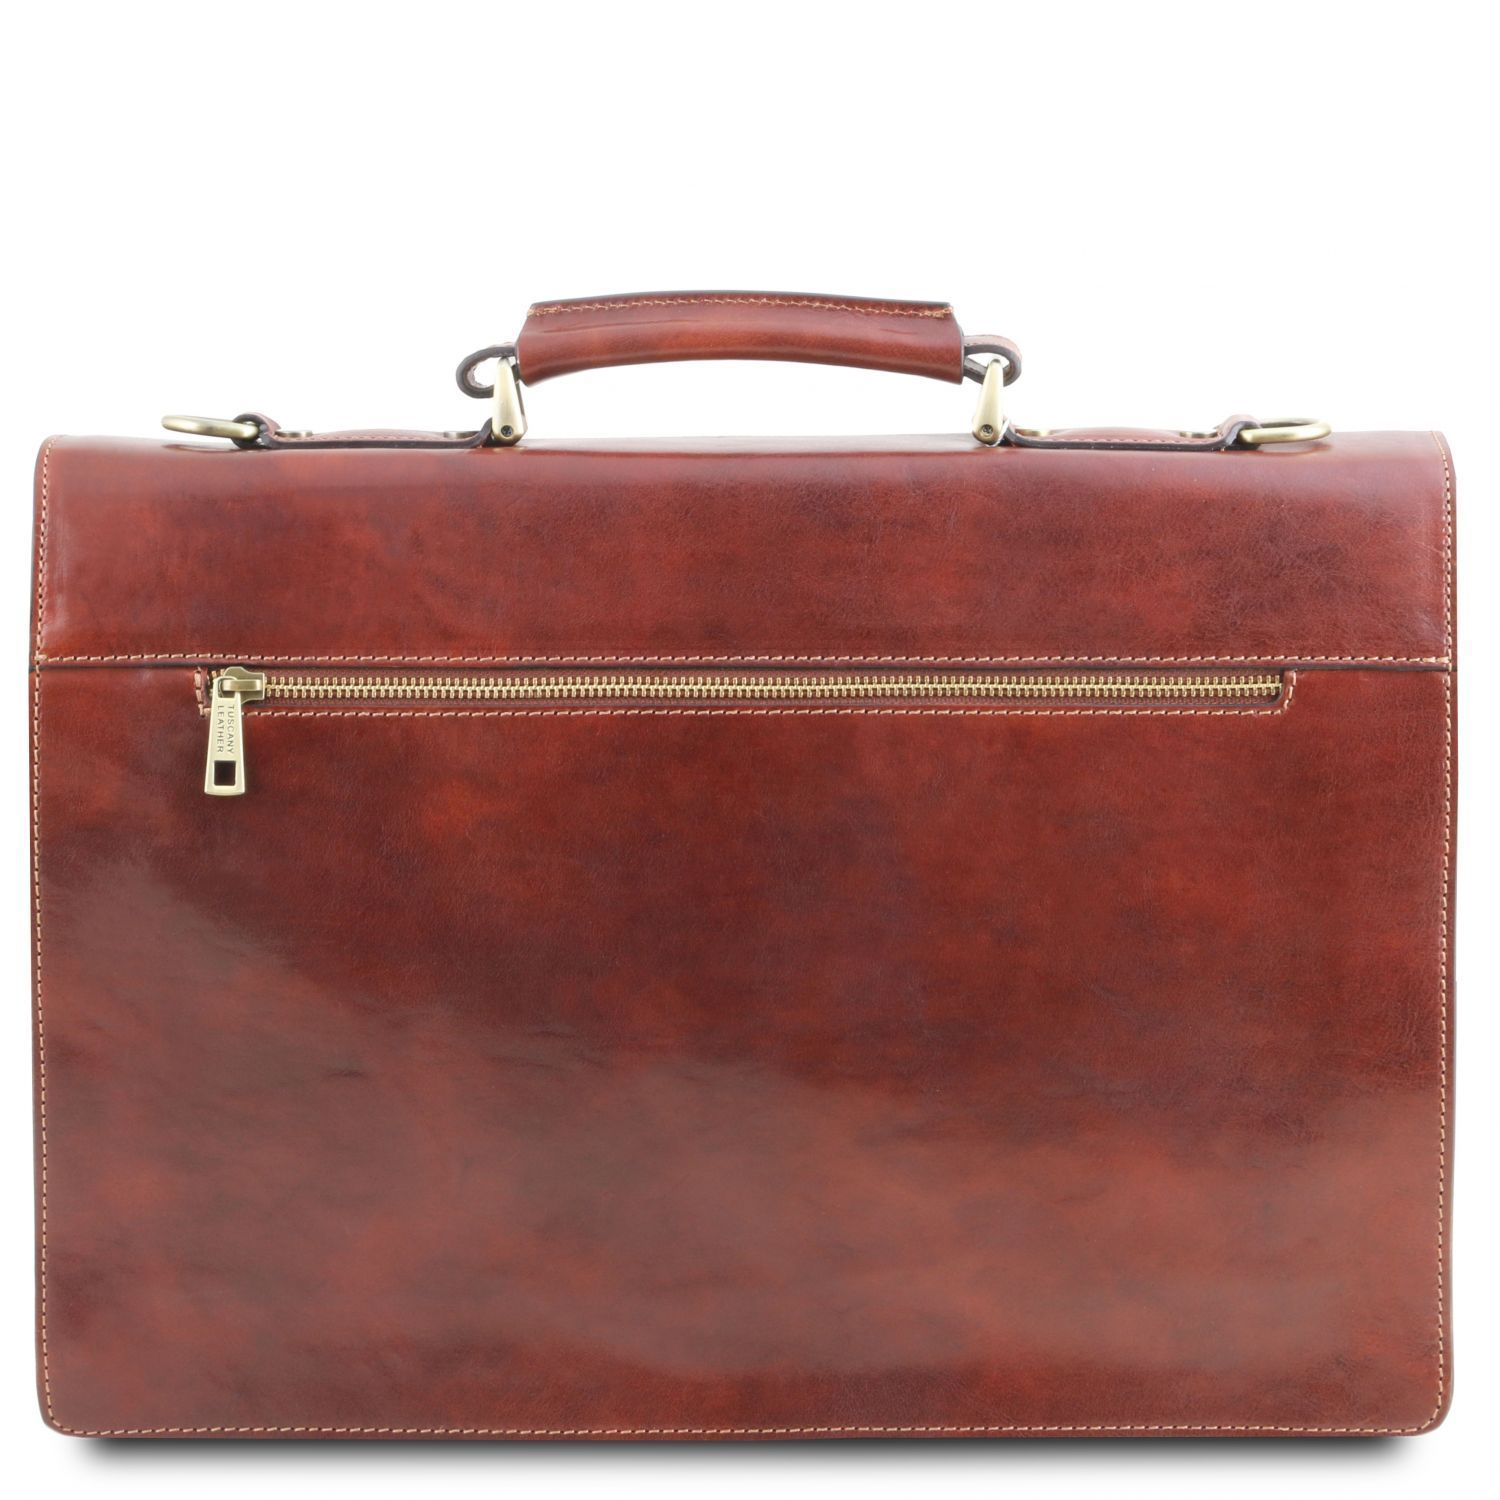 Tuscany Leather 'Assisi' 3 Compartments Leather Briefcase Briefcase Tuscany Leather